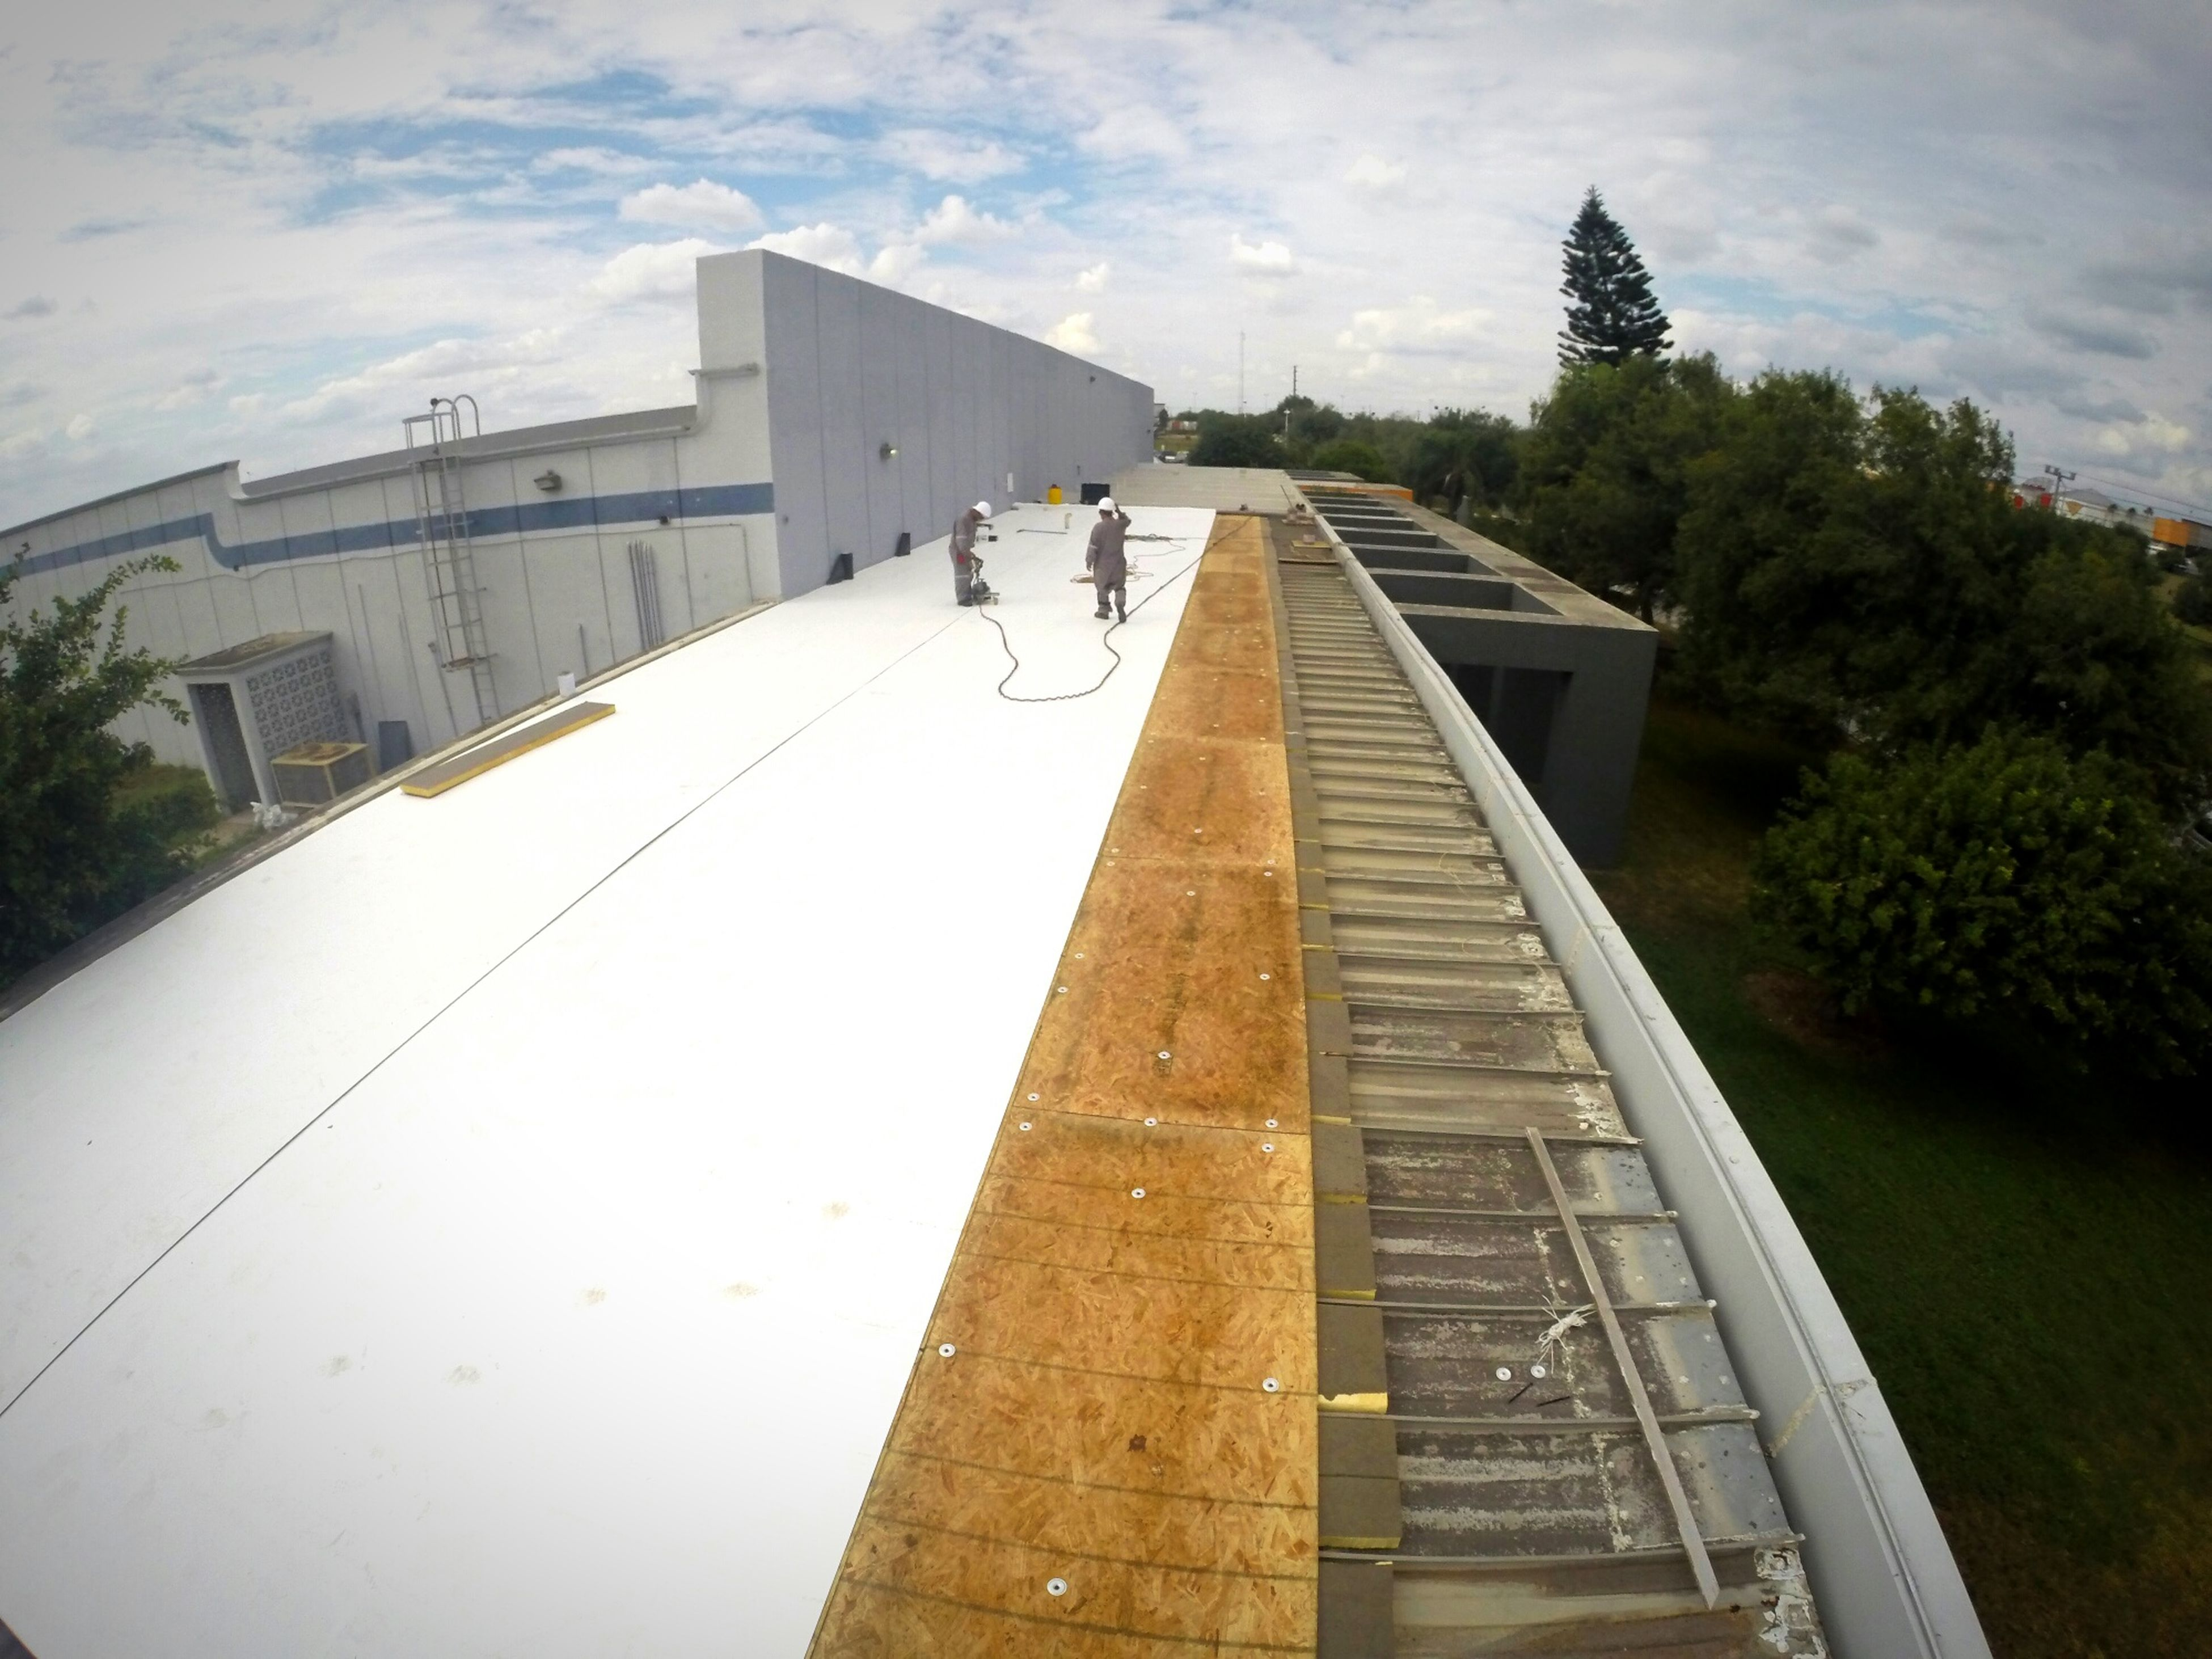 Gopro GoPro Hero3+ Roof Working Hard Work Trees Sky And Clouds OnTop Photography Industrial Industry Industrialservices Service Industrial Area Wood Membrane Whitemembrane